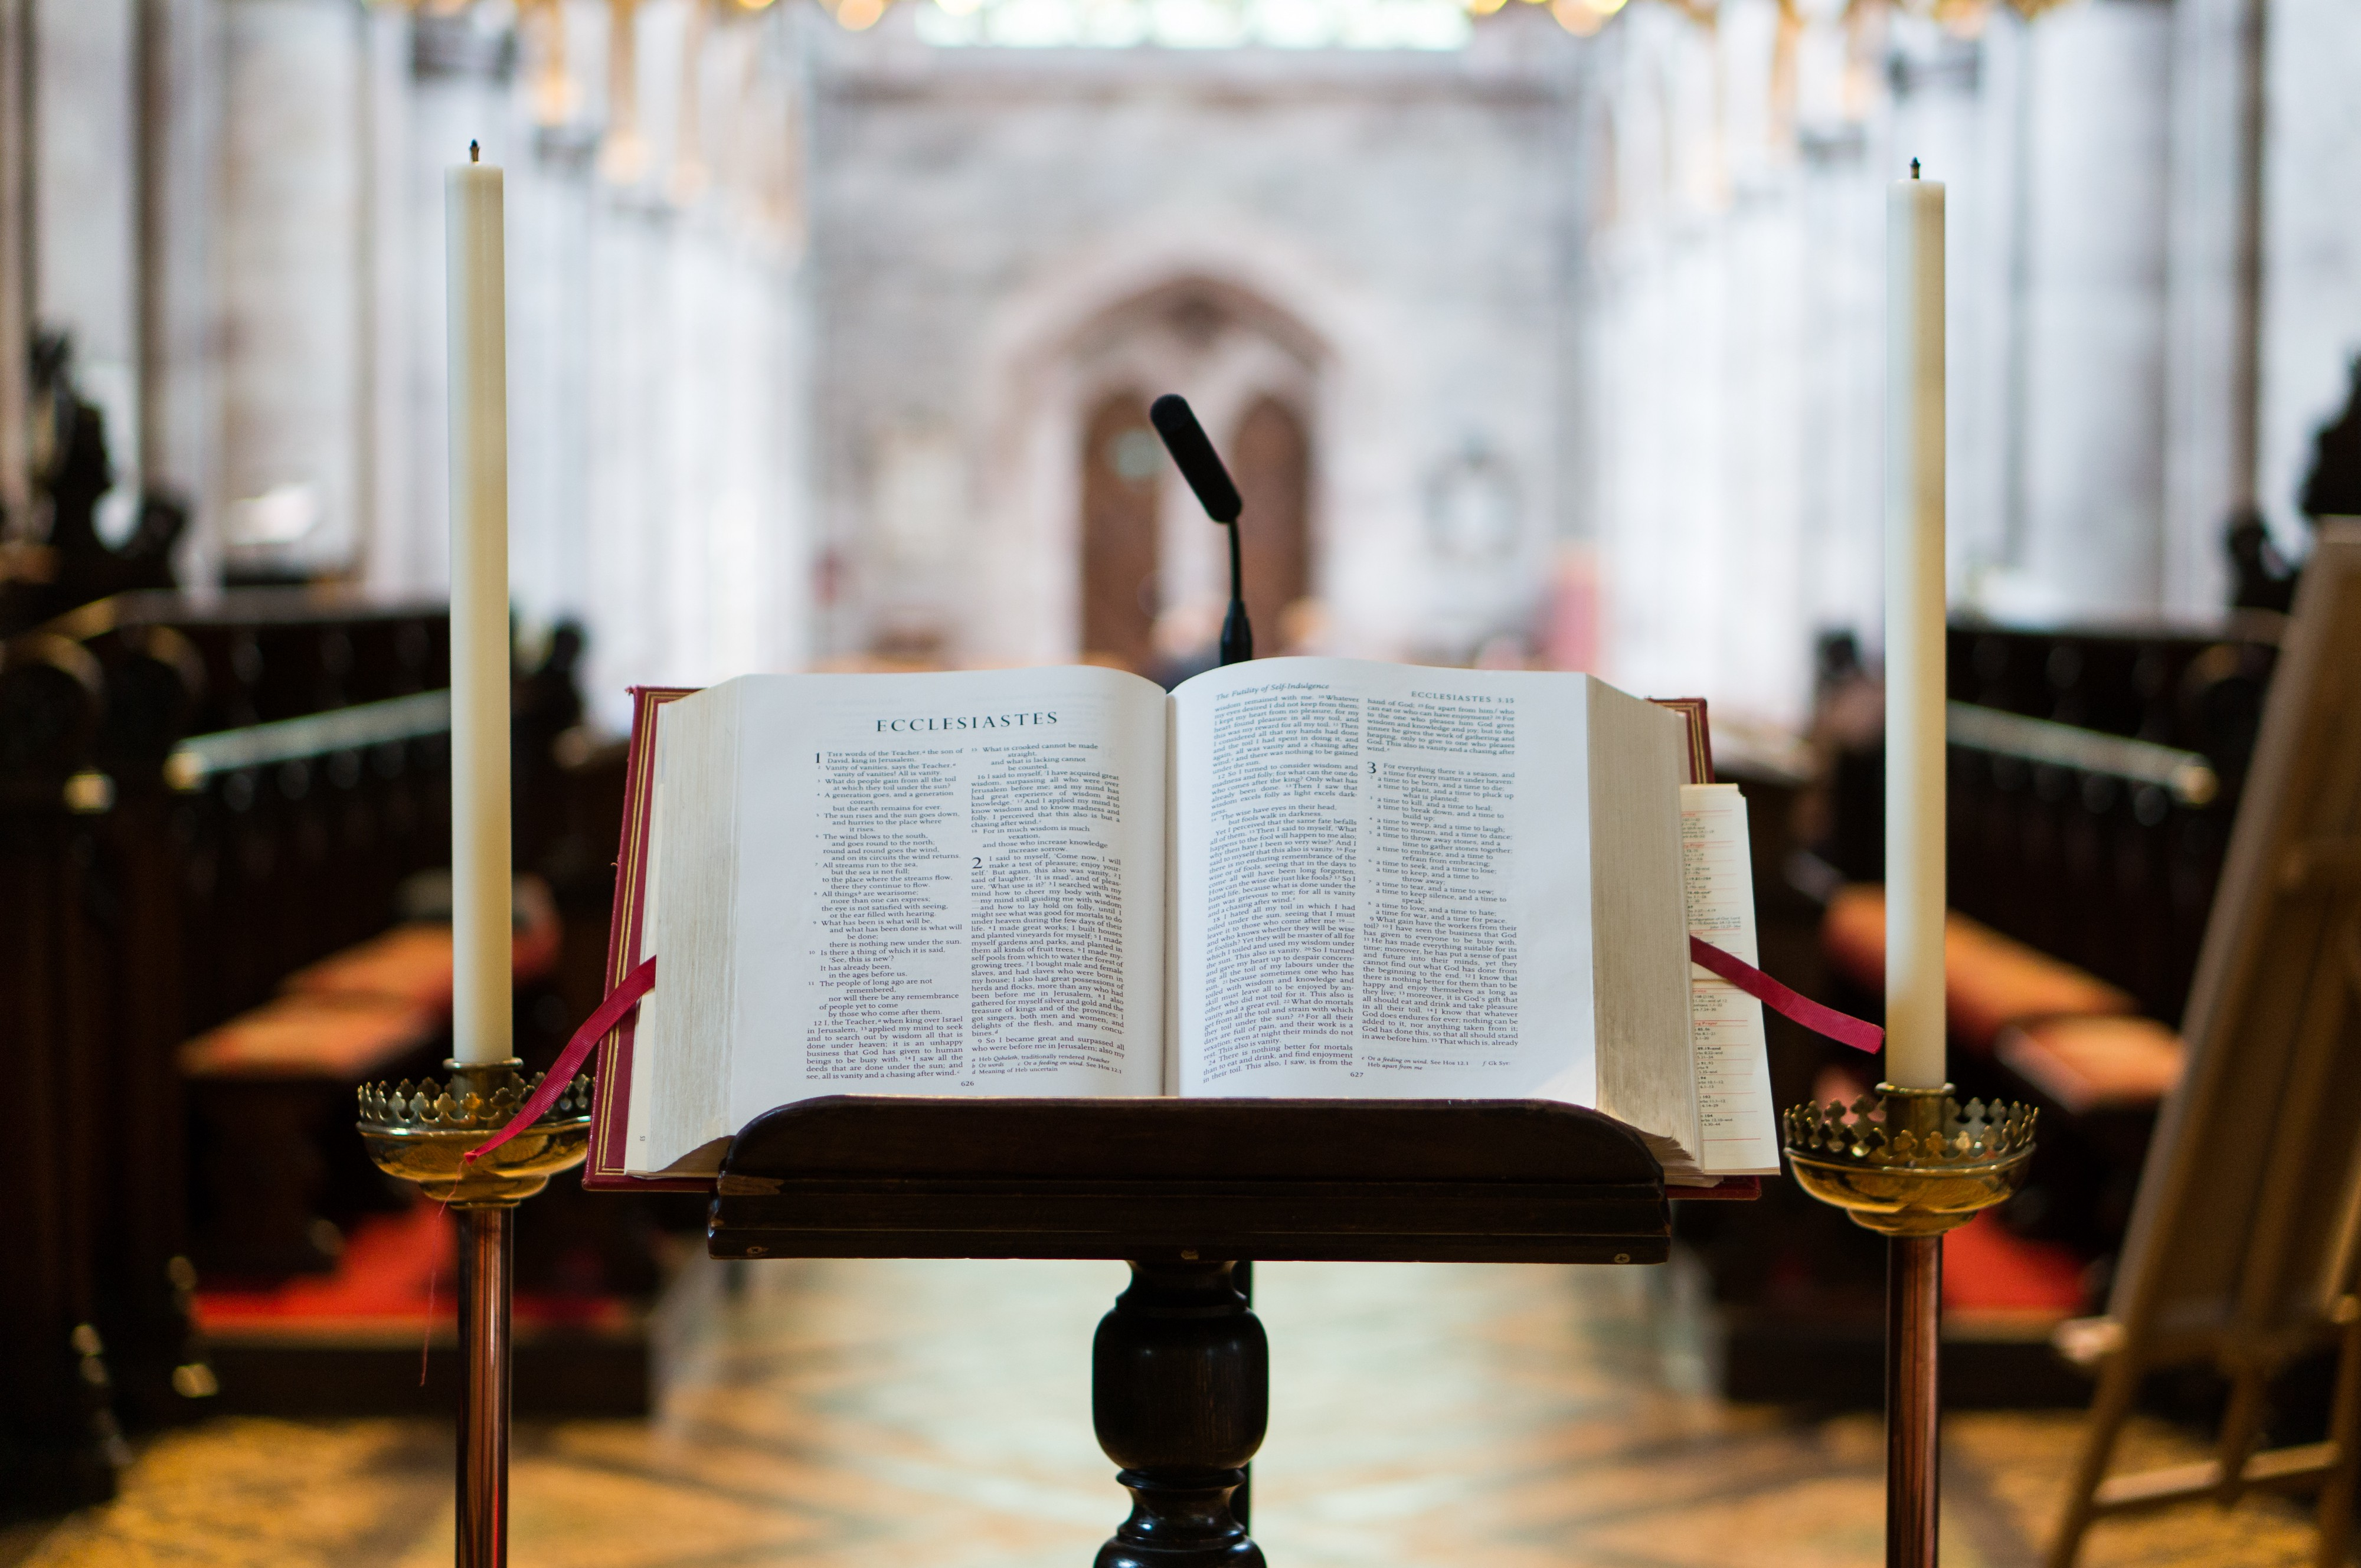 Photo of a Bible open on a pulpit in front of a church.